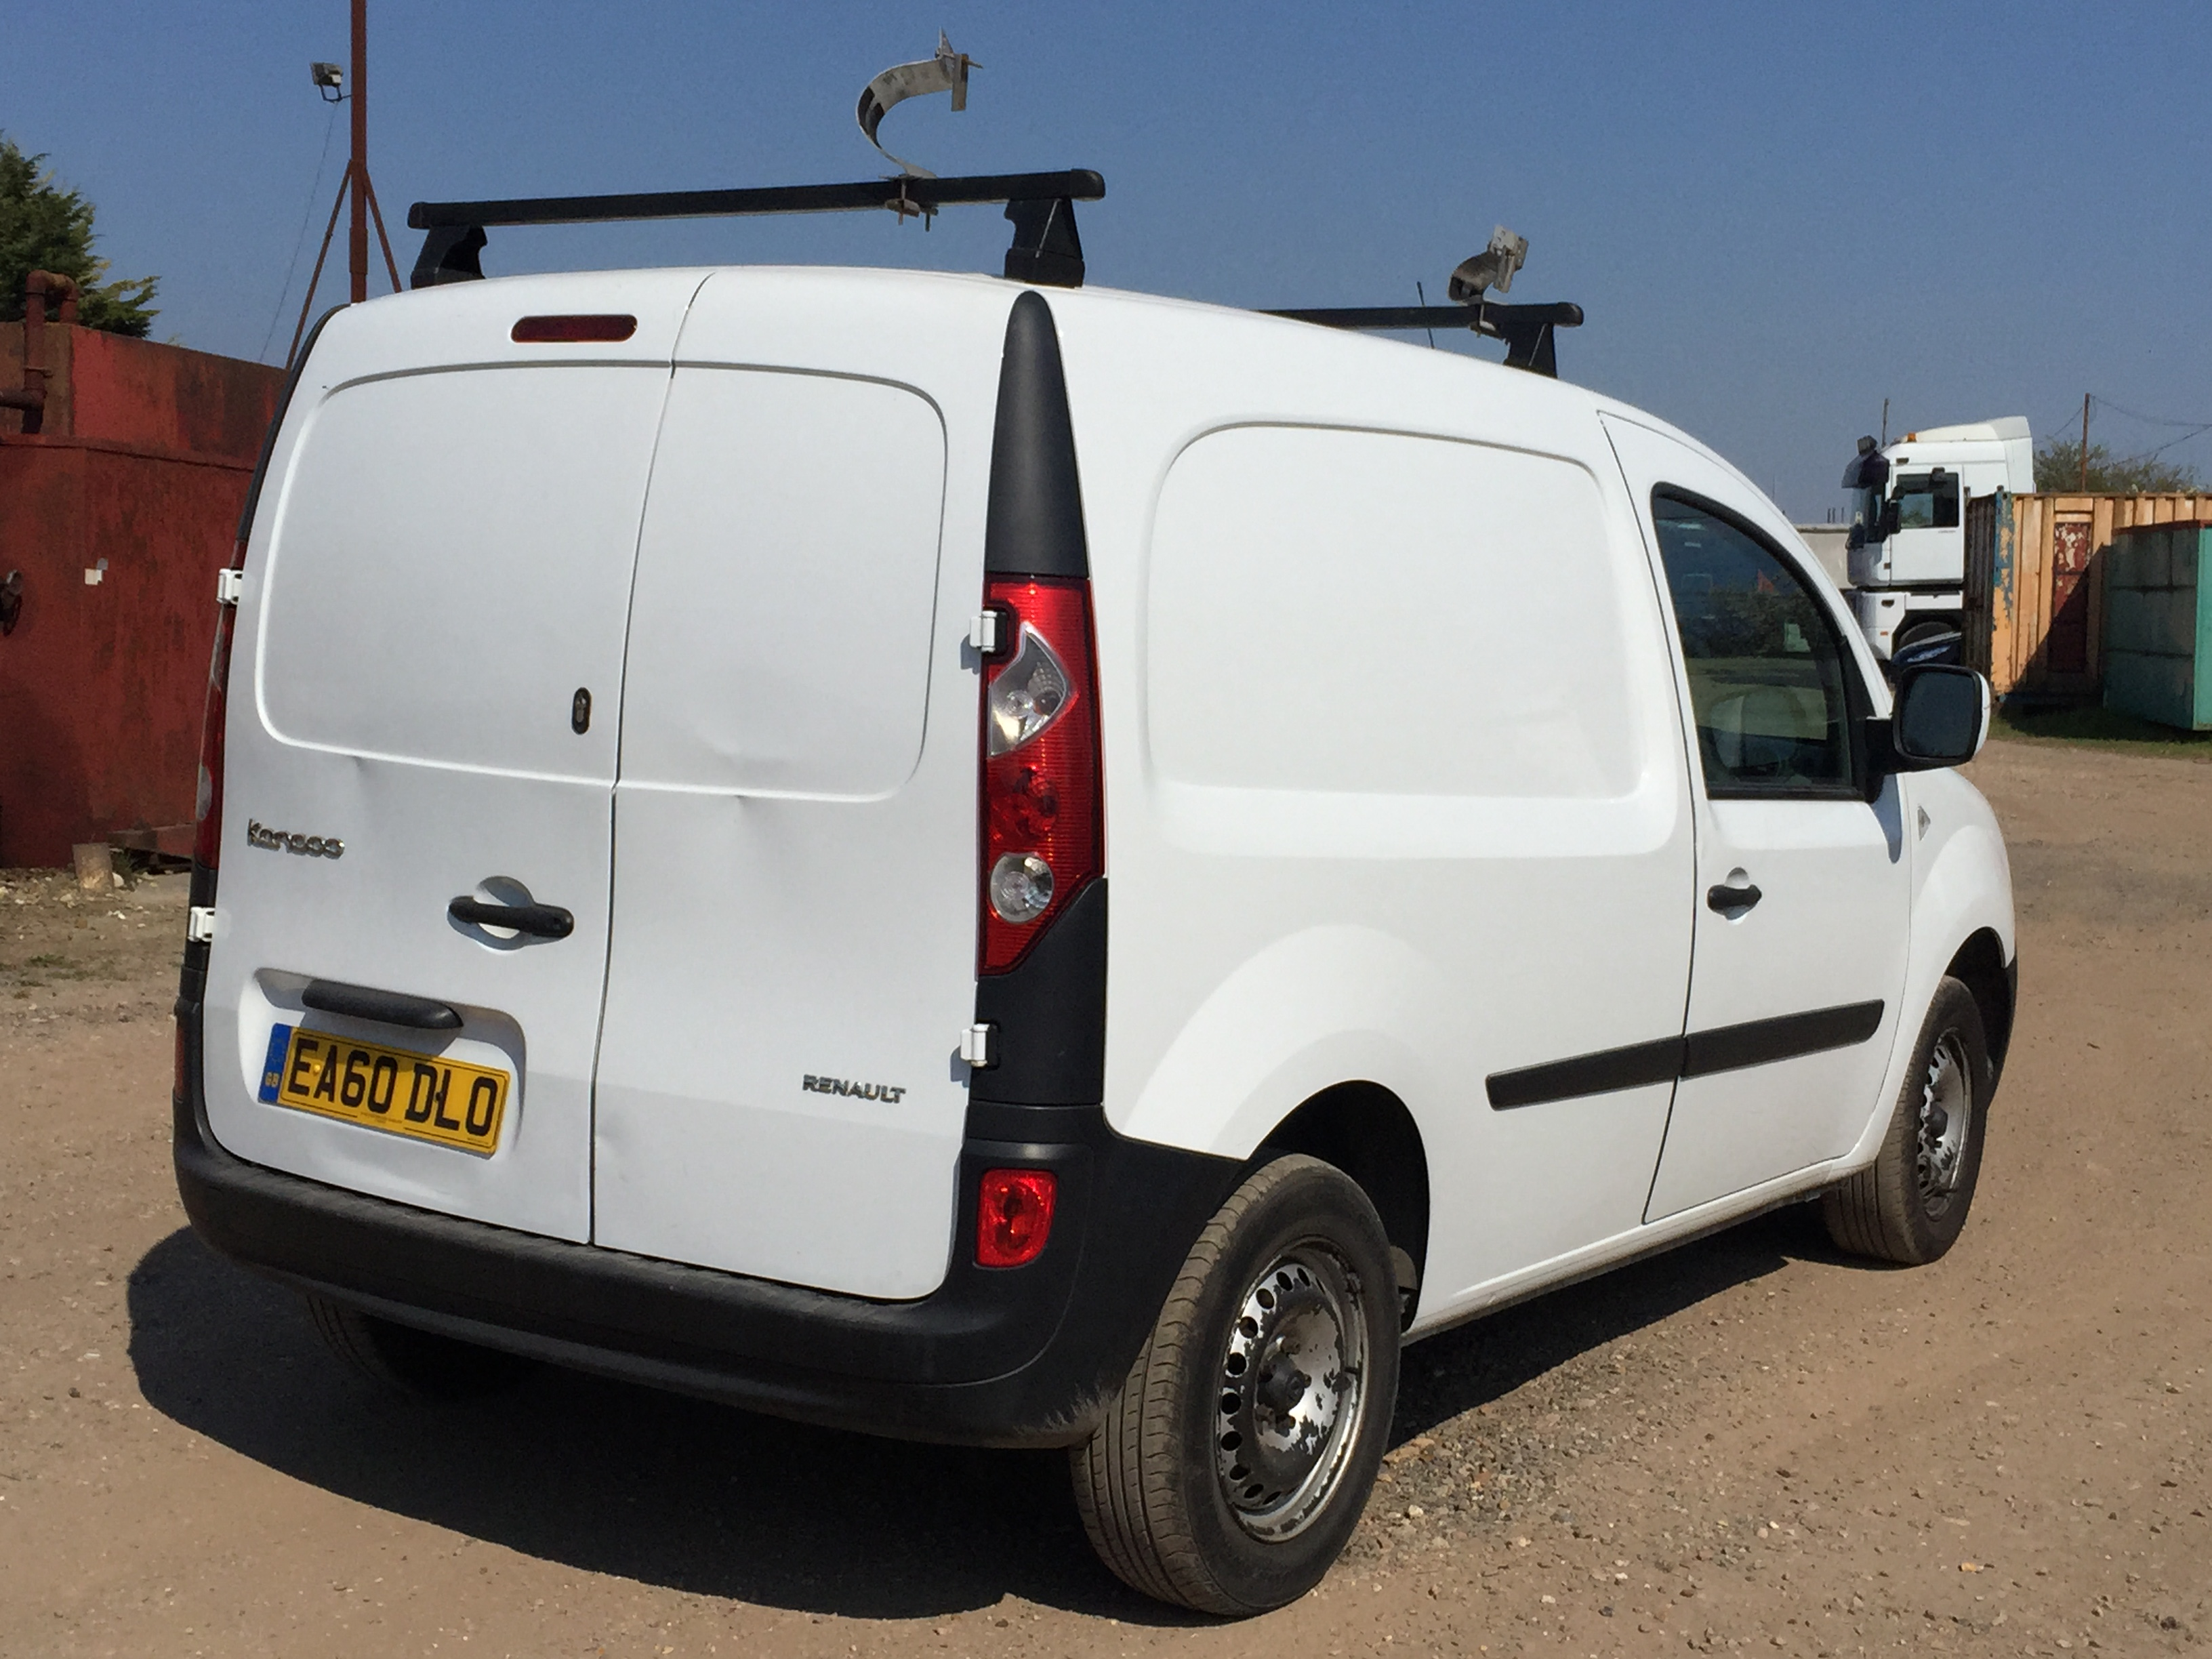 renault kangoo ml19 67 dci 1 5 manual 60 plate white 1 5 ltr manual 5 speed. Black Bedroom Furniture Sets. Home Design Ideas